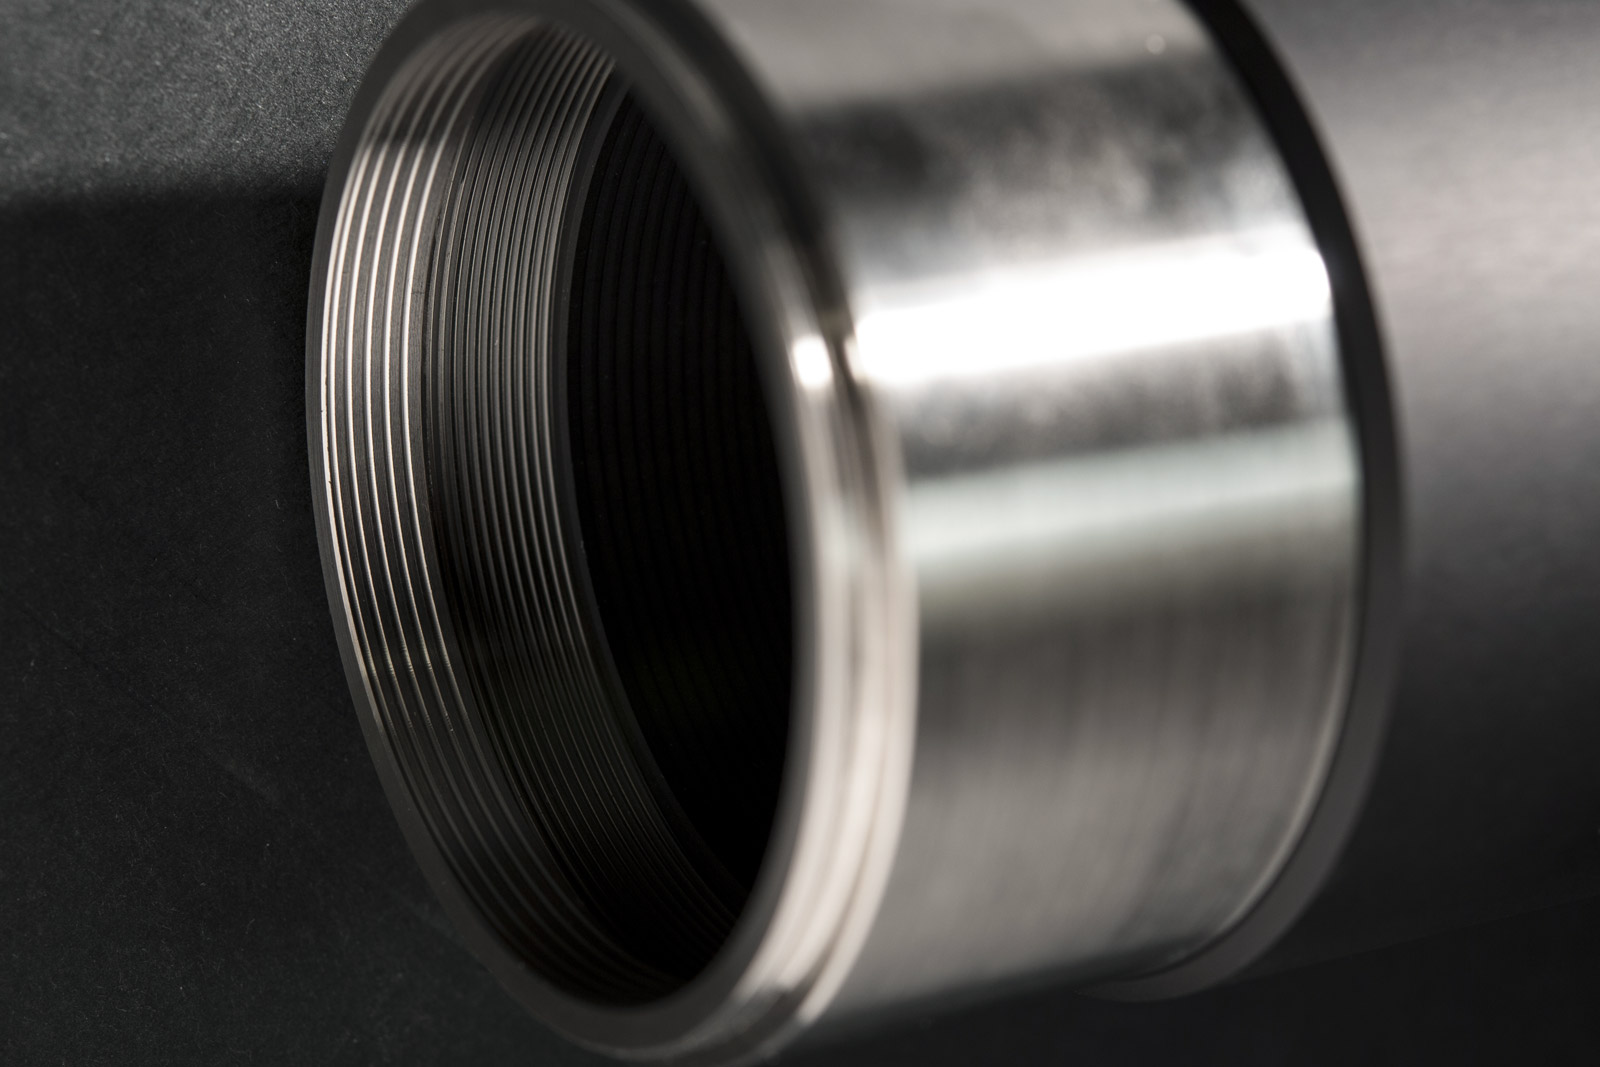 Detail of a TC12K telecentric lens mount interface